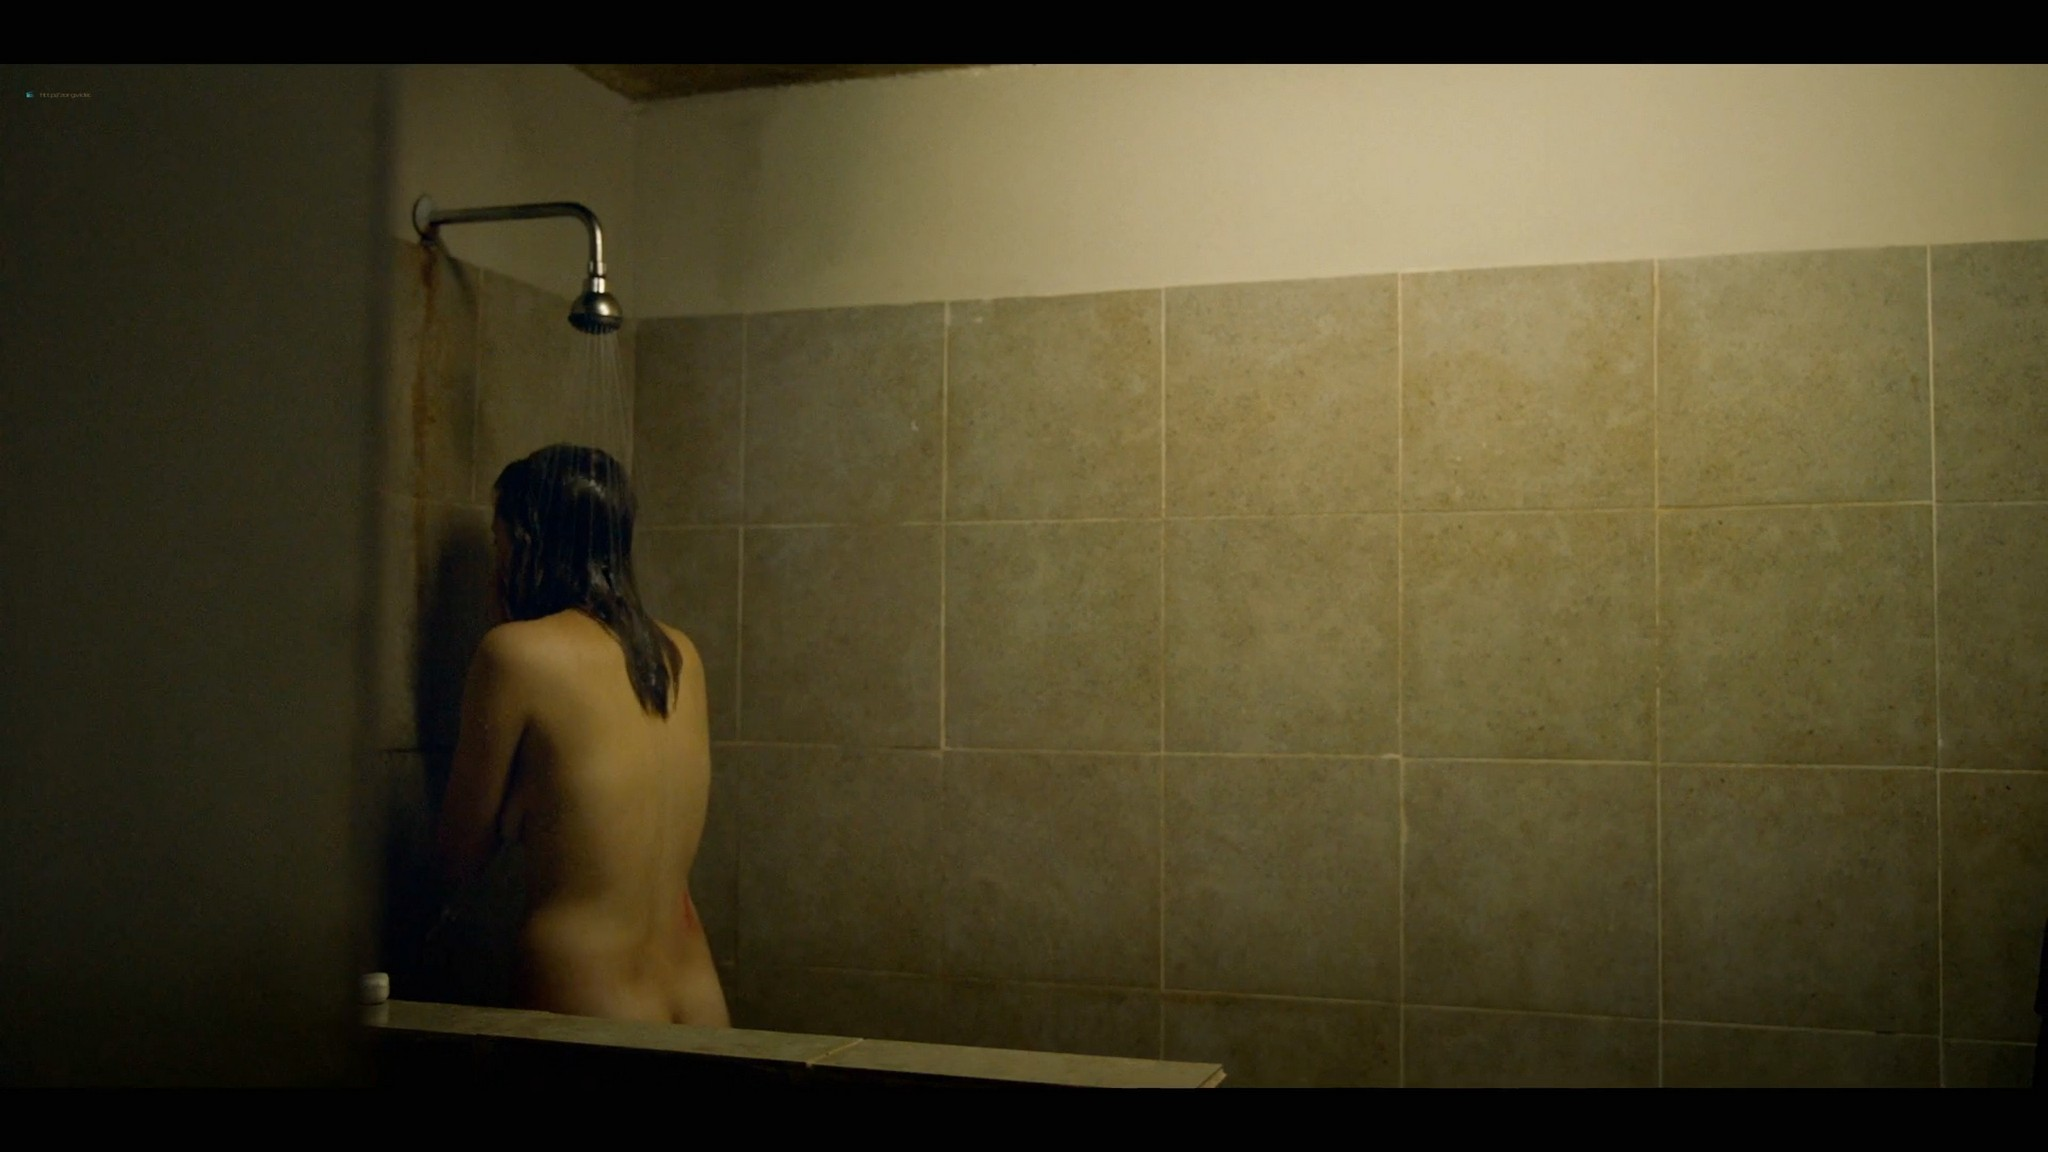 Nadia Tereszkiewicz nude butt and topless Possessions 2020 S1 1080p Web 01